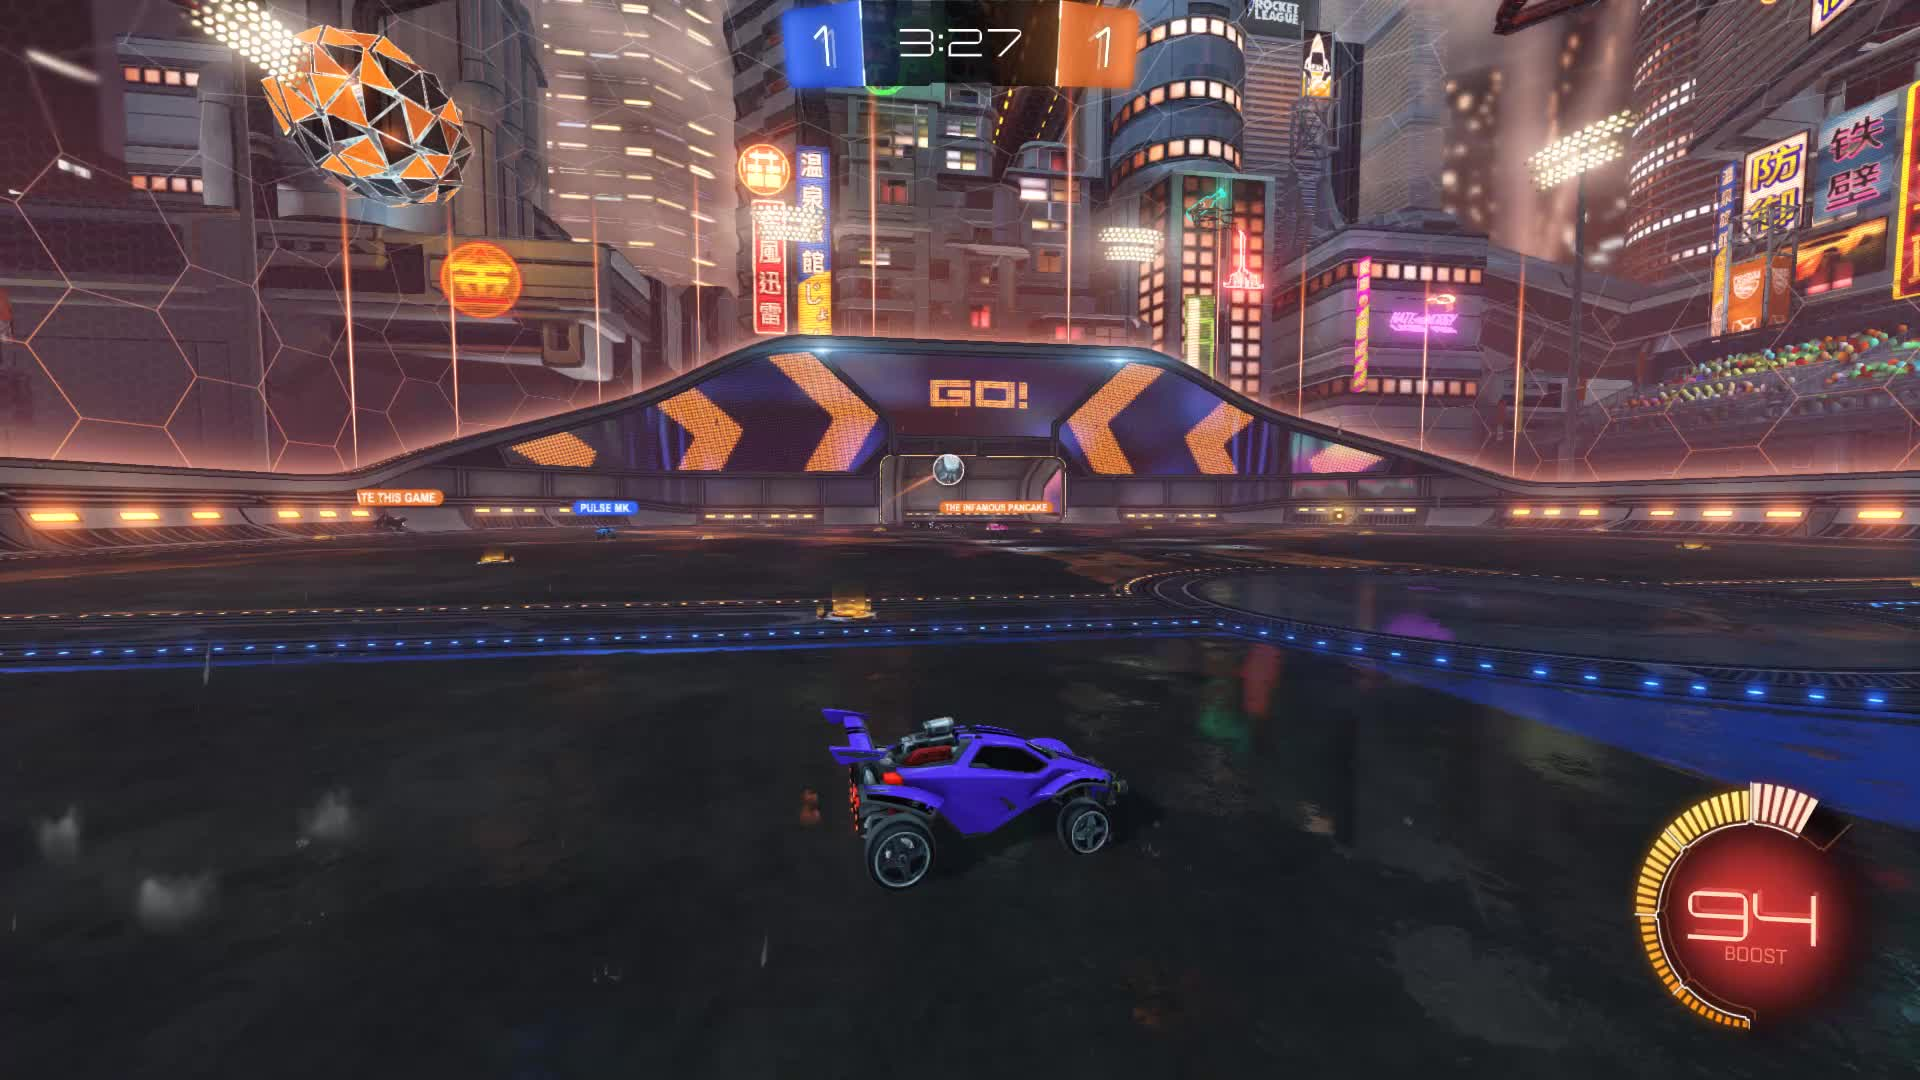 Jhzer Rocket League Gifs Search | Search & Share on Homdor